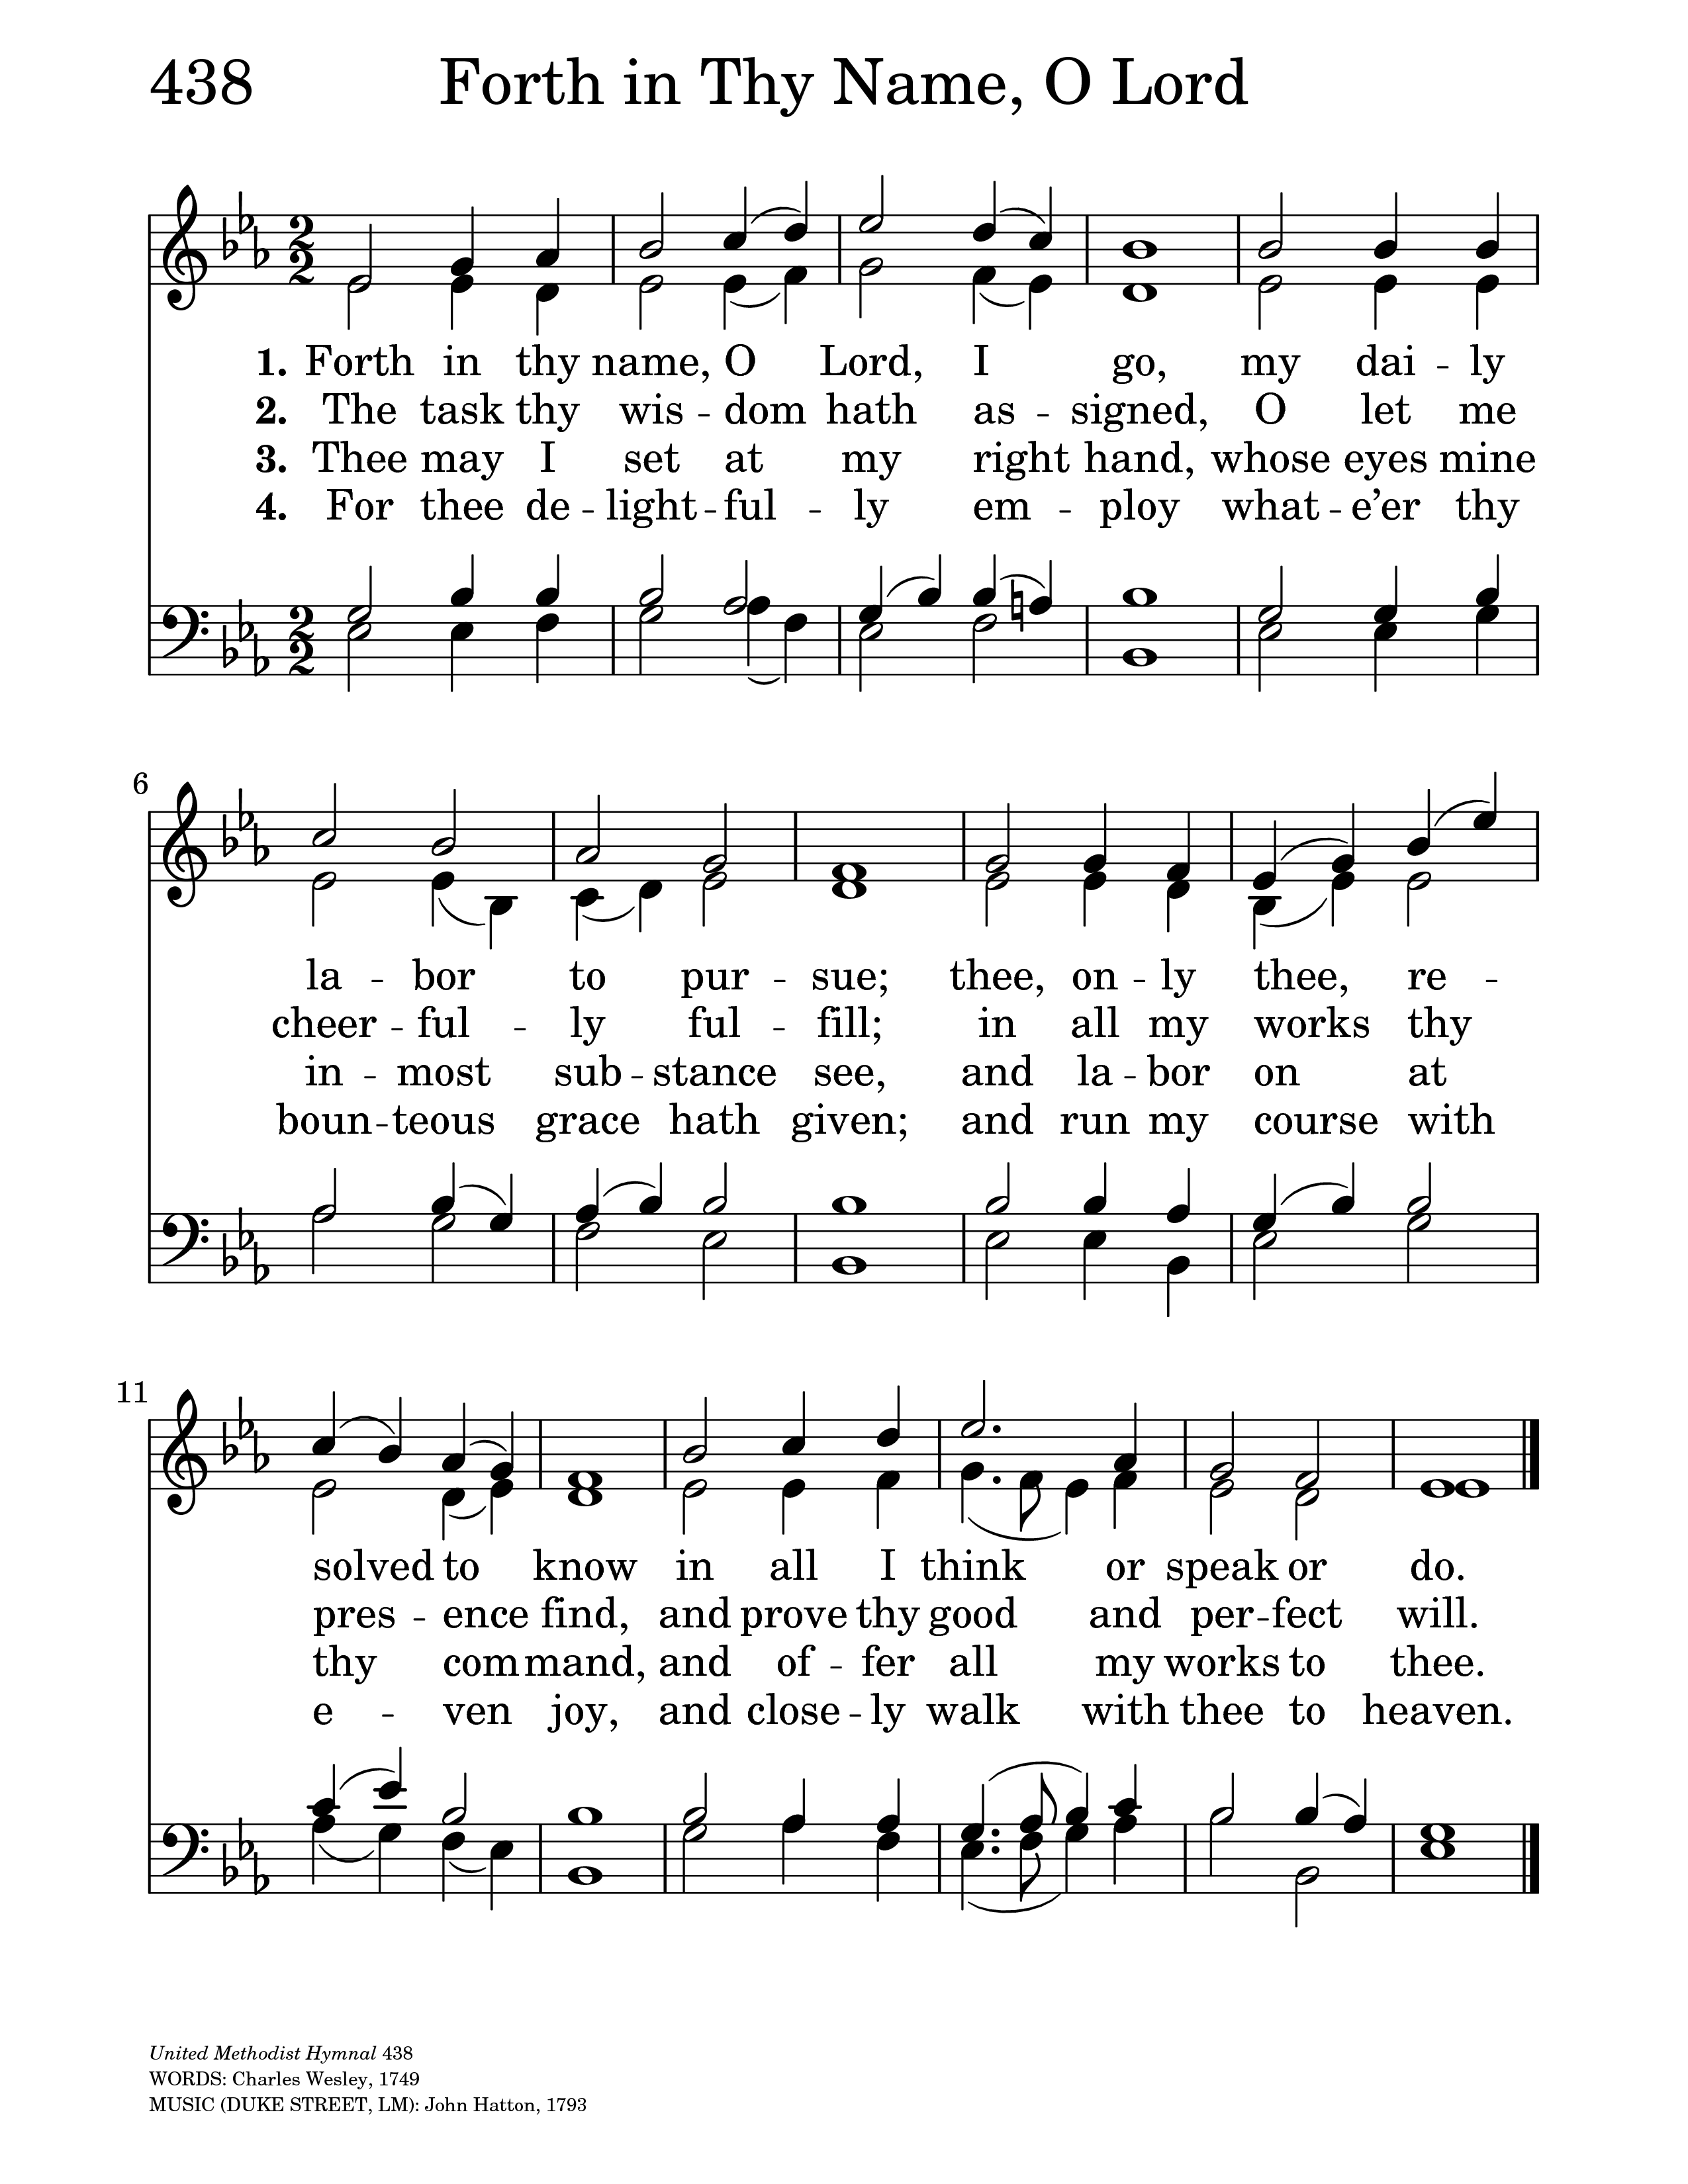 Forth in Thy Name, O Lord, I Go | Hymnary org